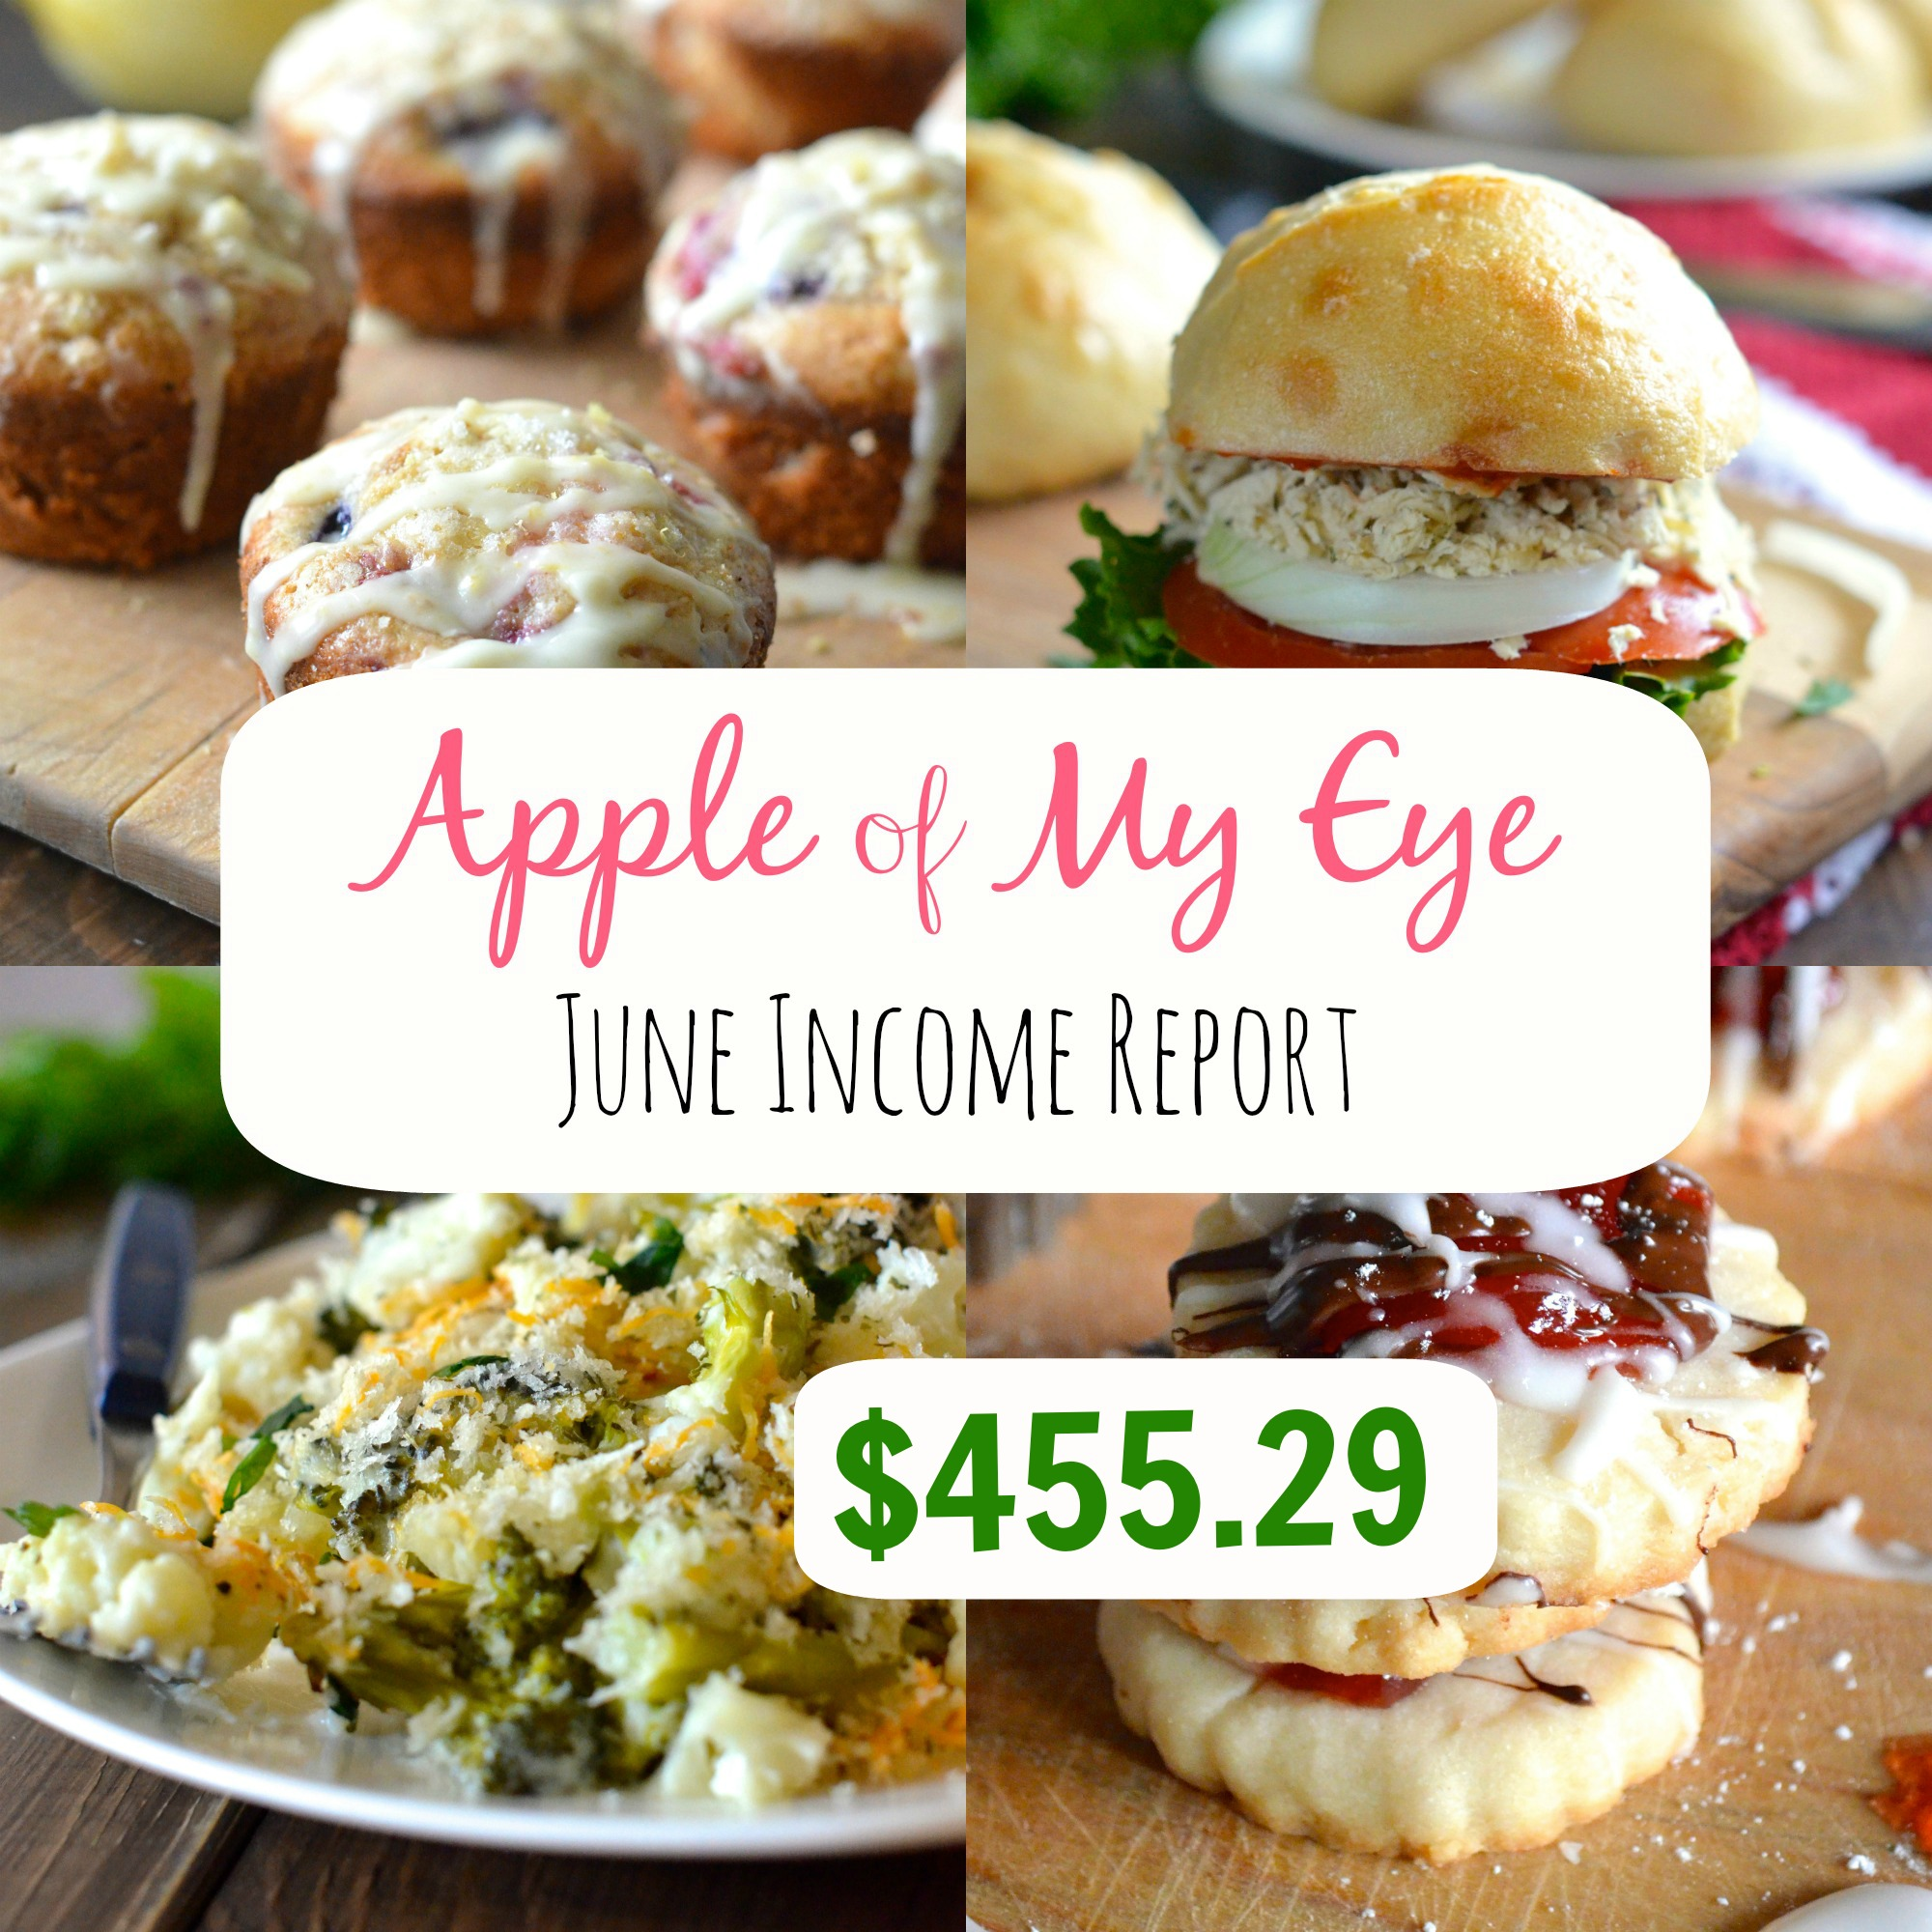 455 Eye Apartments: June Income Report- $455.29